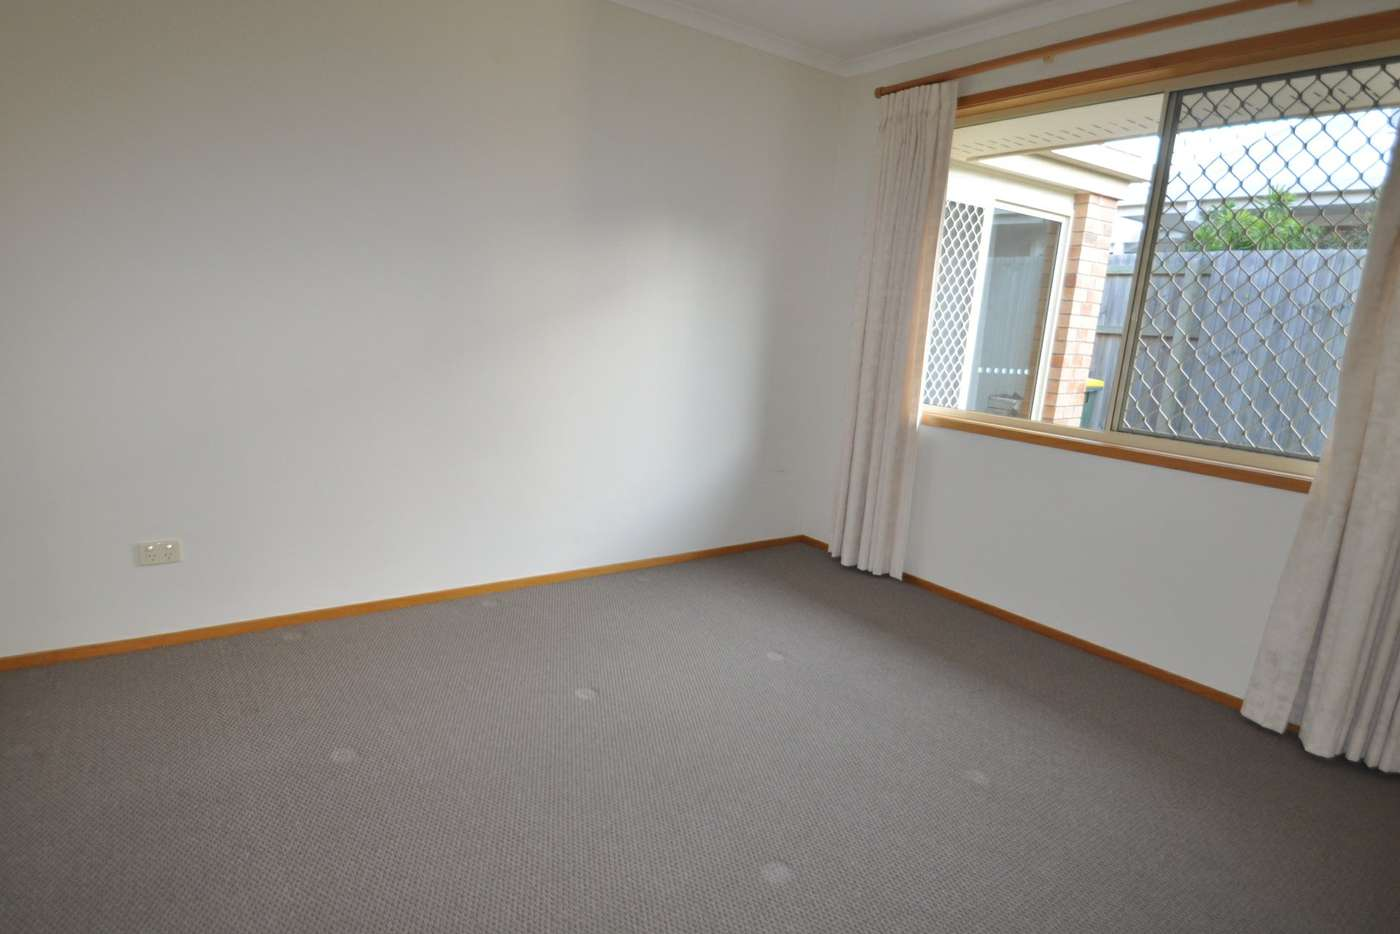 Seventh view of Homely house listing, 139 Petersen St, Wynnum QLD 4178